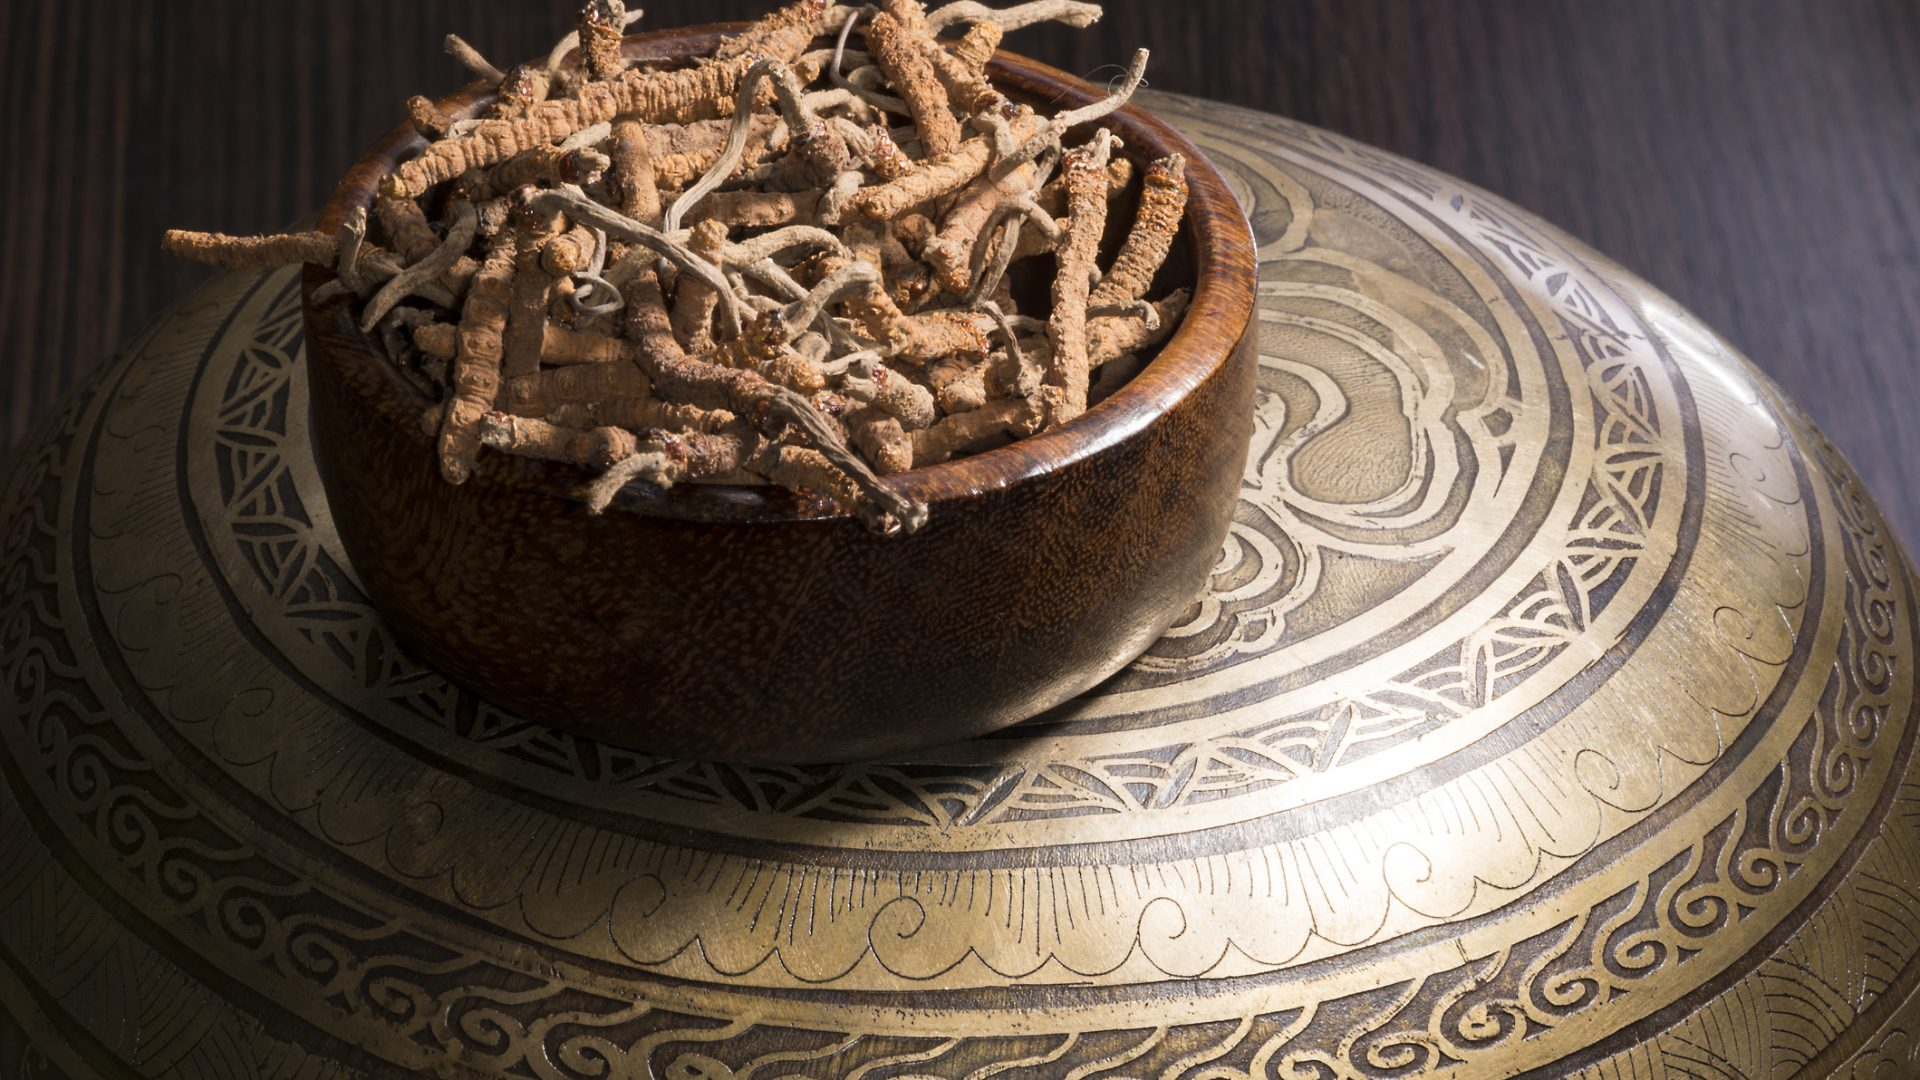 Cordyceps – What Are They?